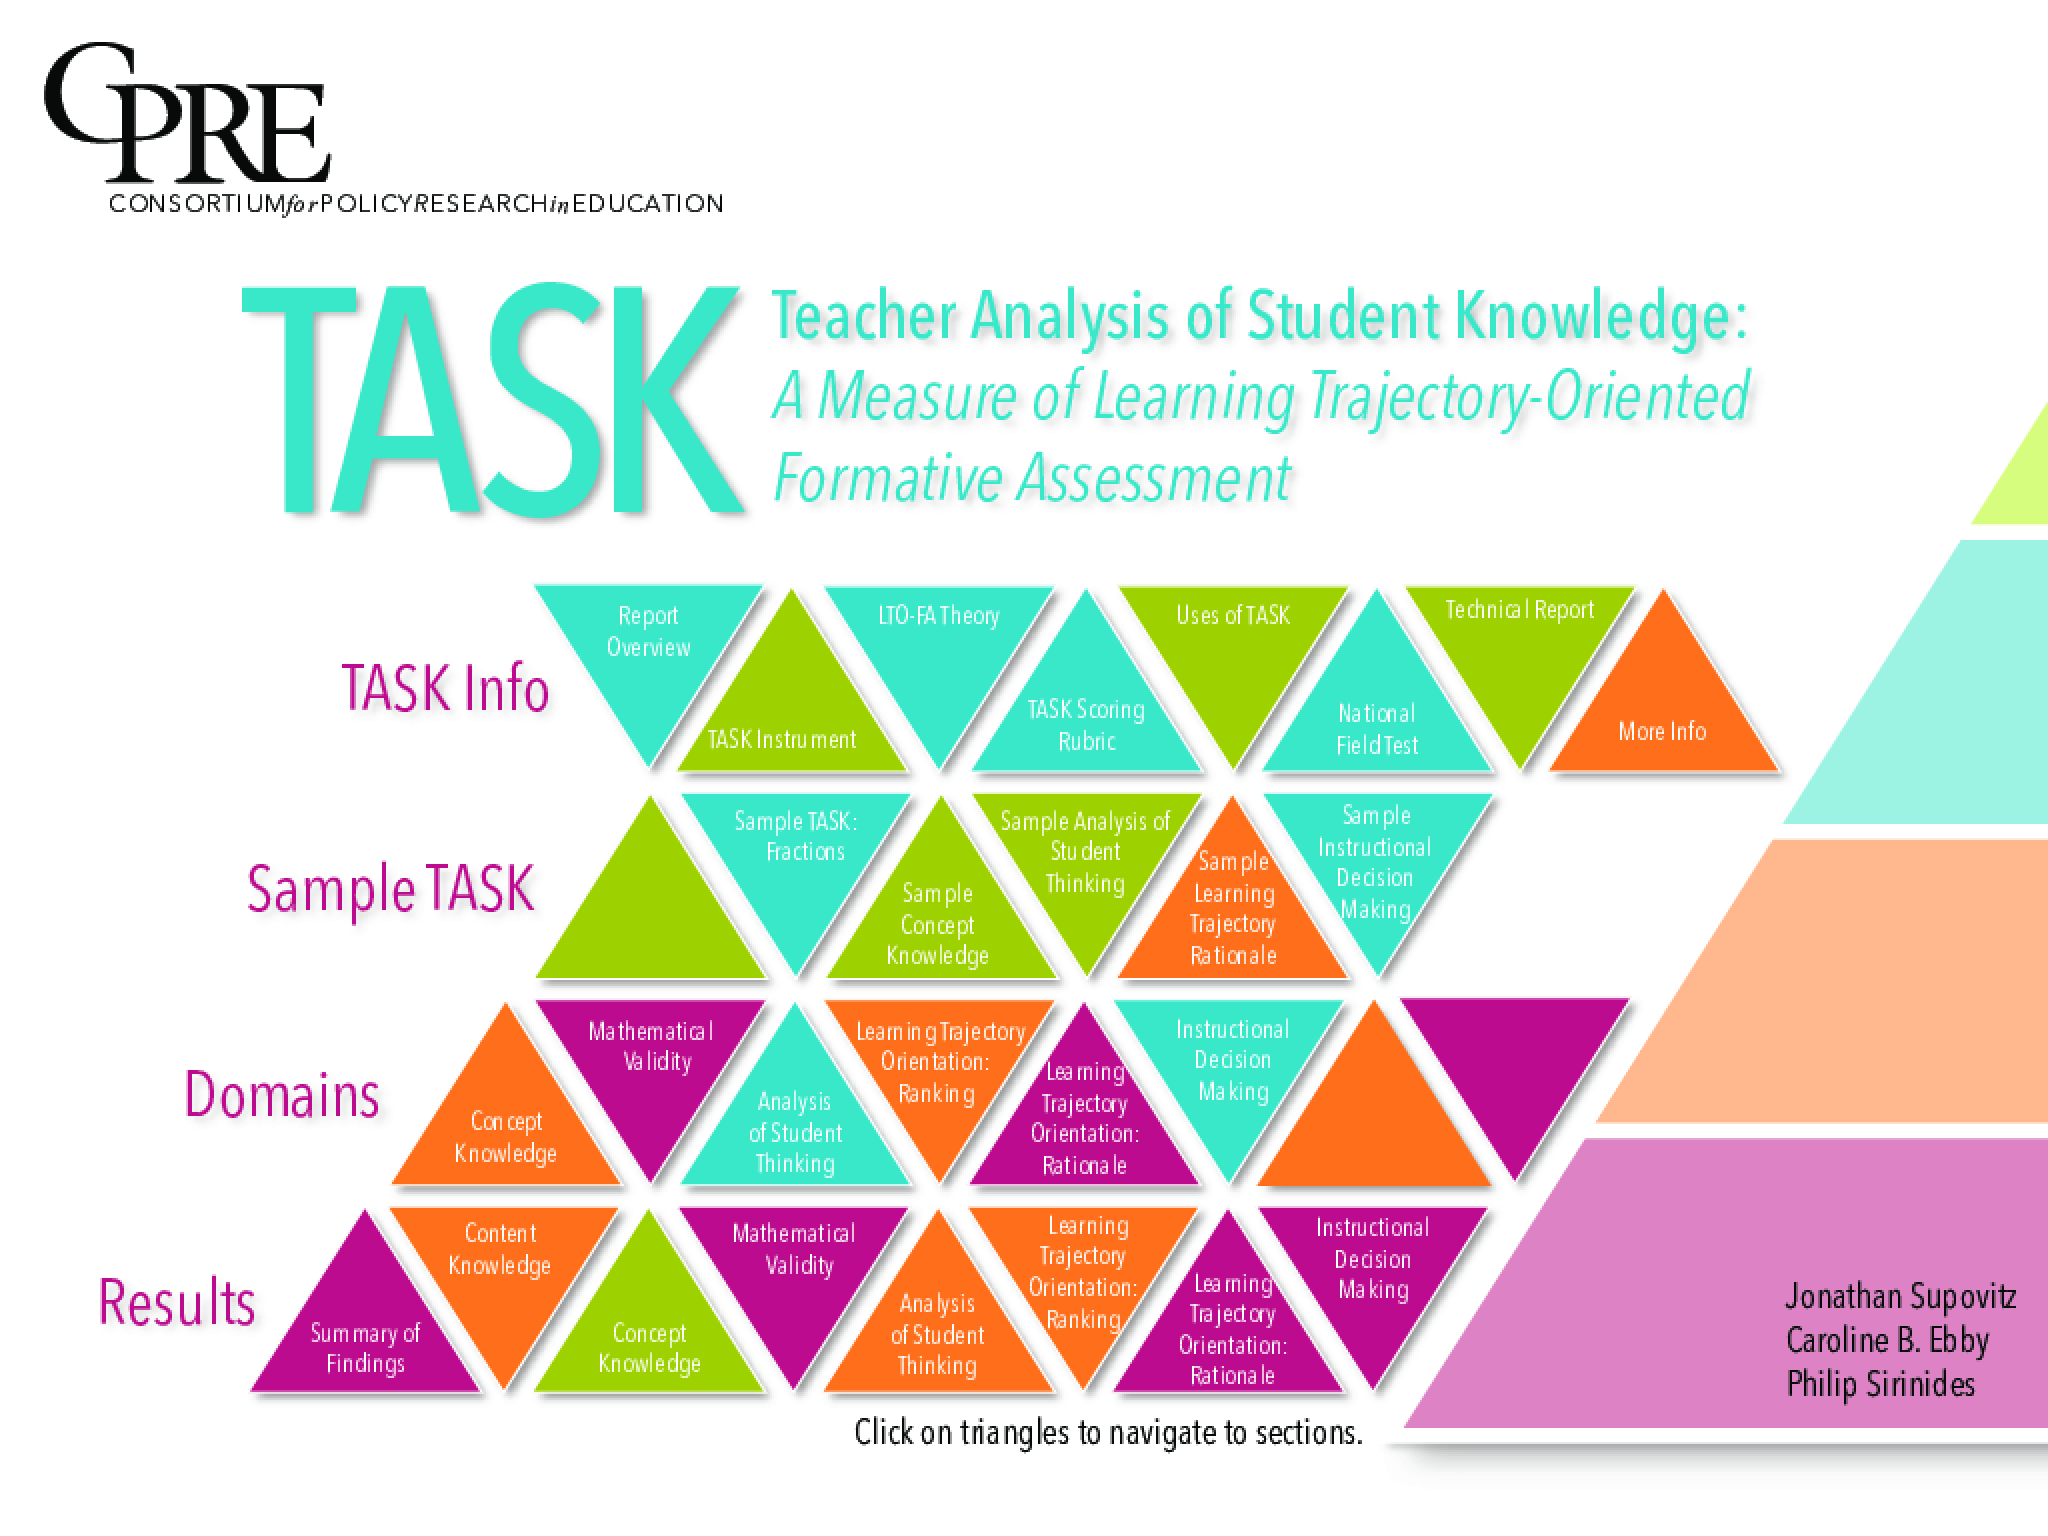 TASK: A Measure of Learning Trajectory-Oriented Formative Assessment